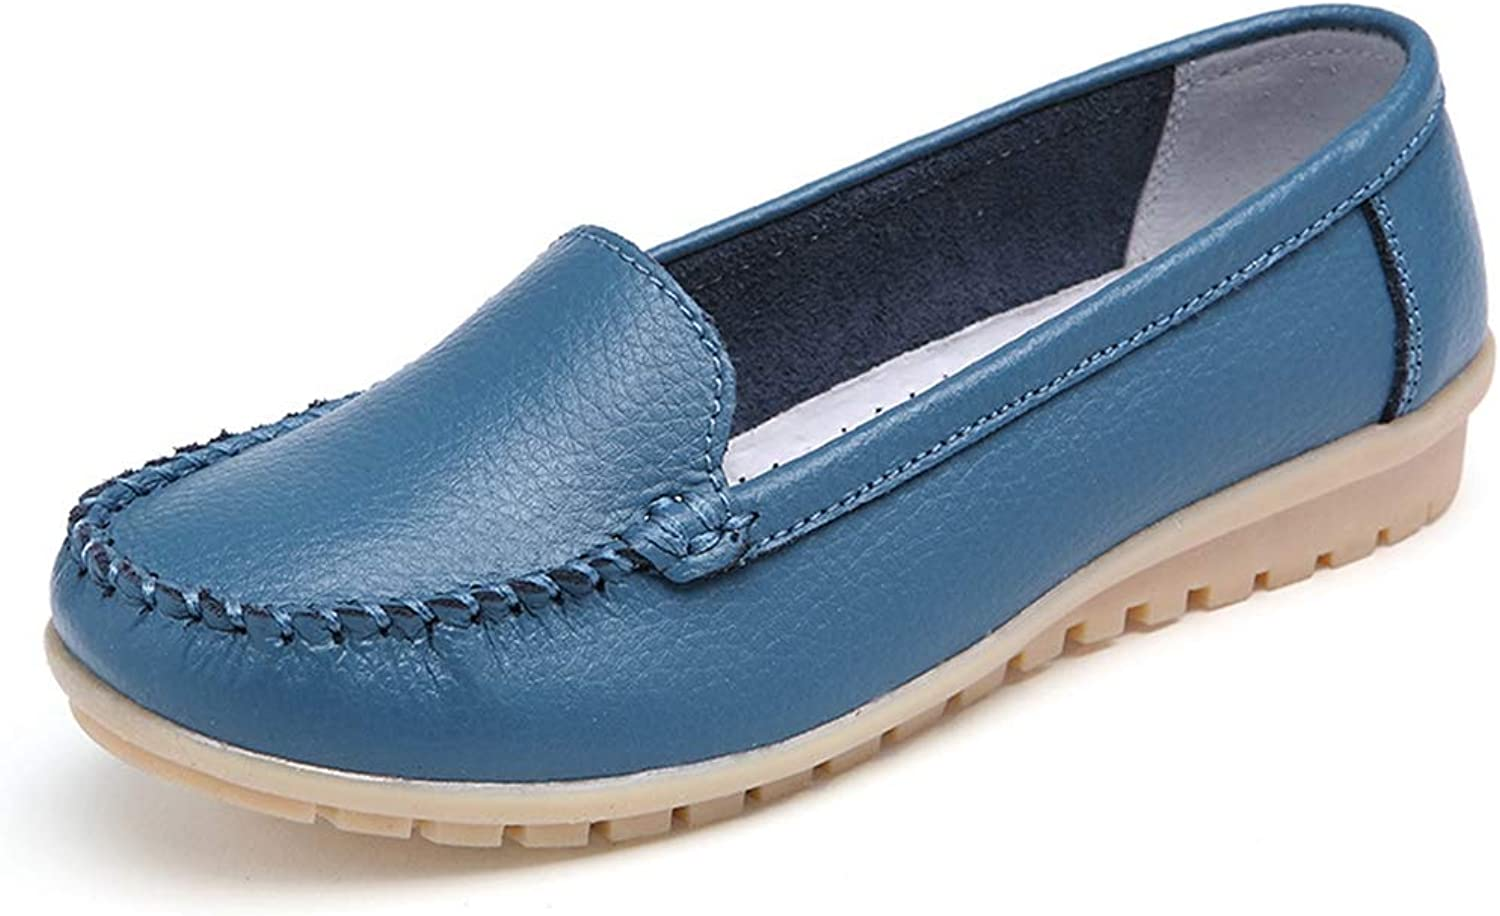 T-JULY Summer Women Flats Leather Driving shoes Ladies Slip on Flats Candy color Ballet Loafers